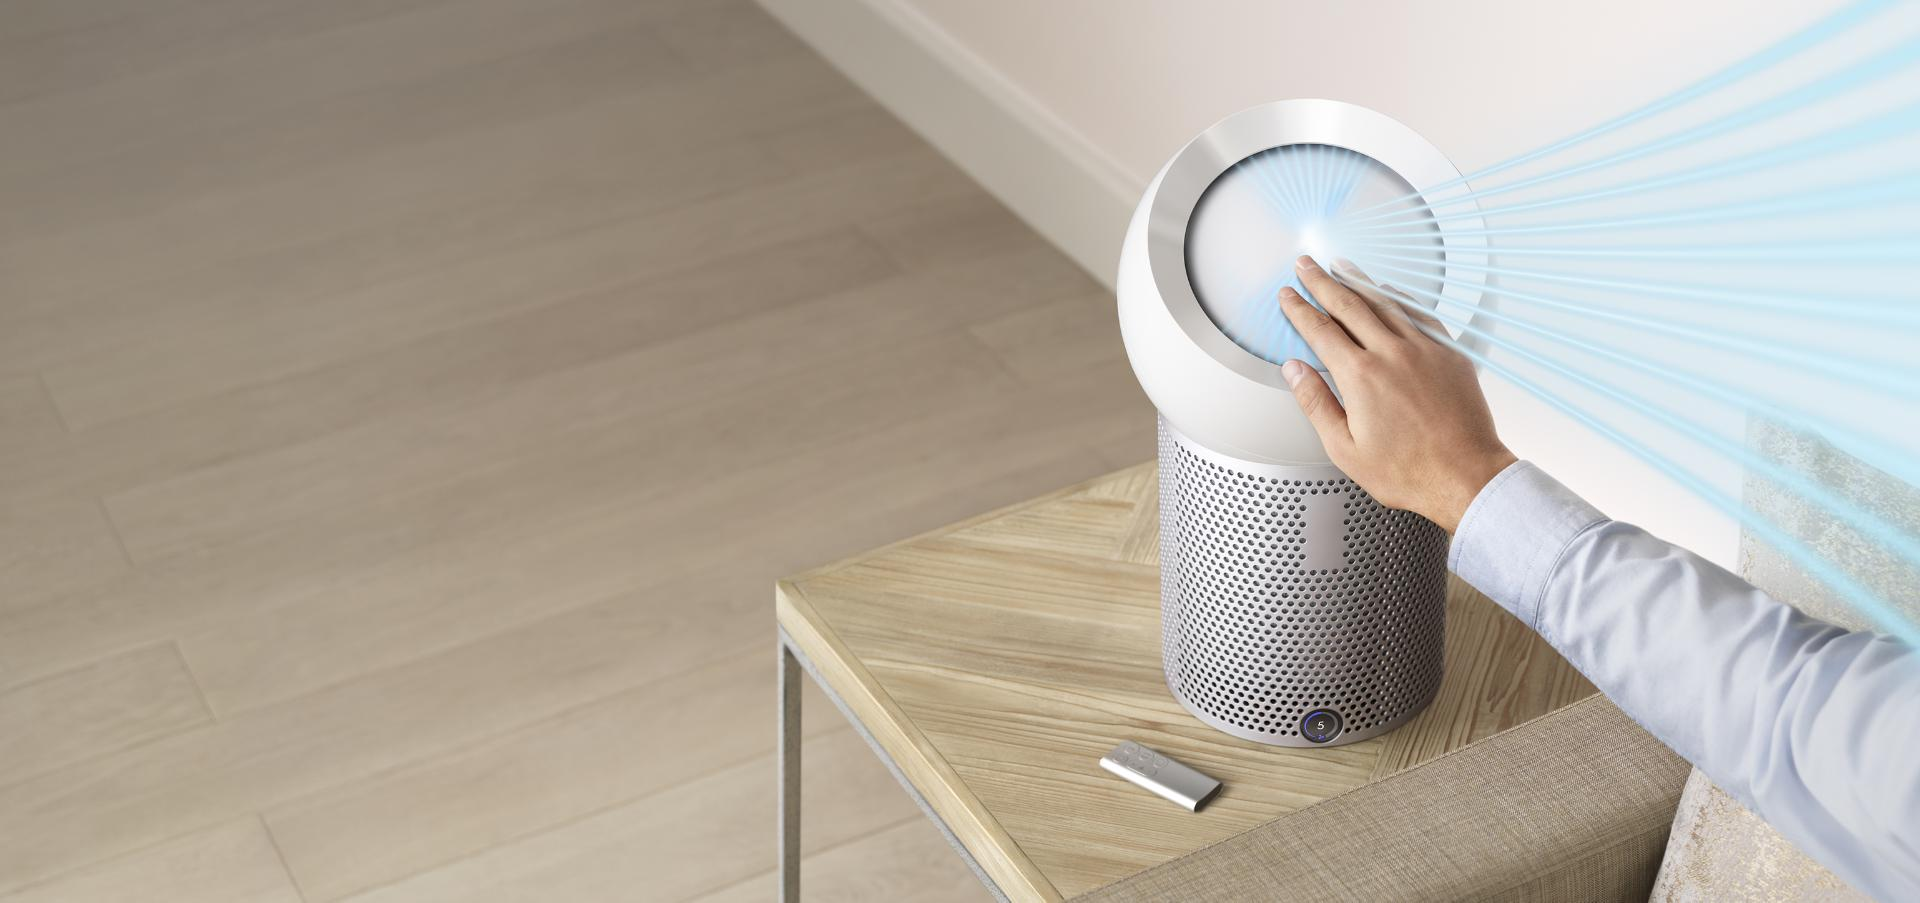 Hand reaching out to refocus airflow with Dyson Core Flow™ technology